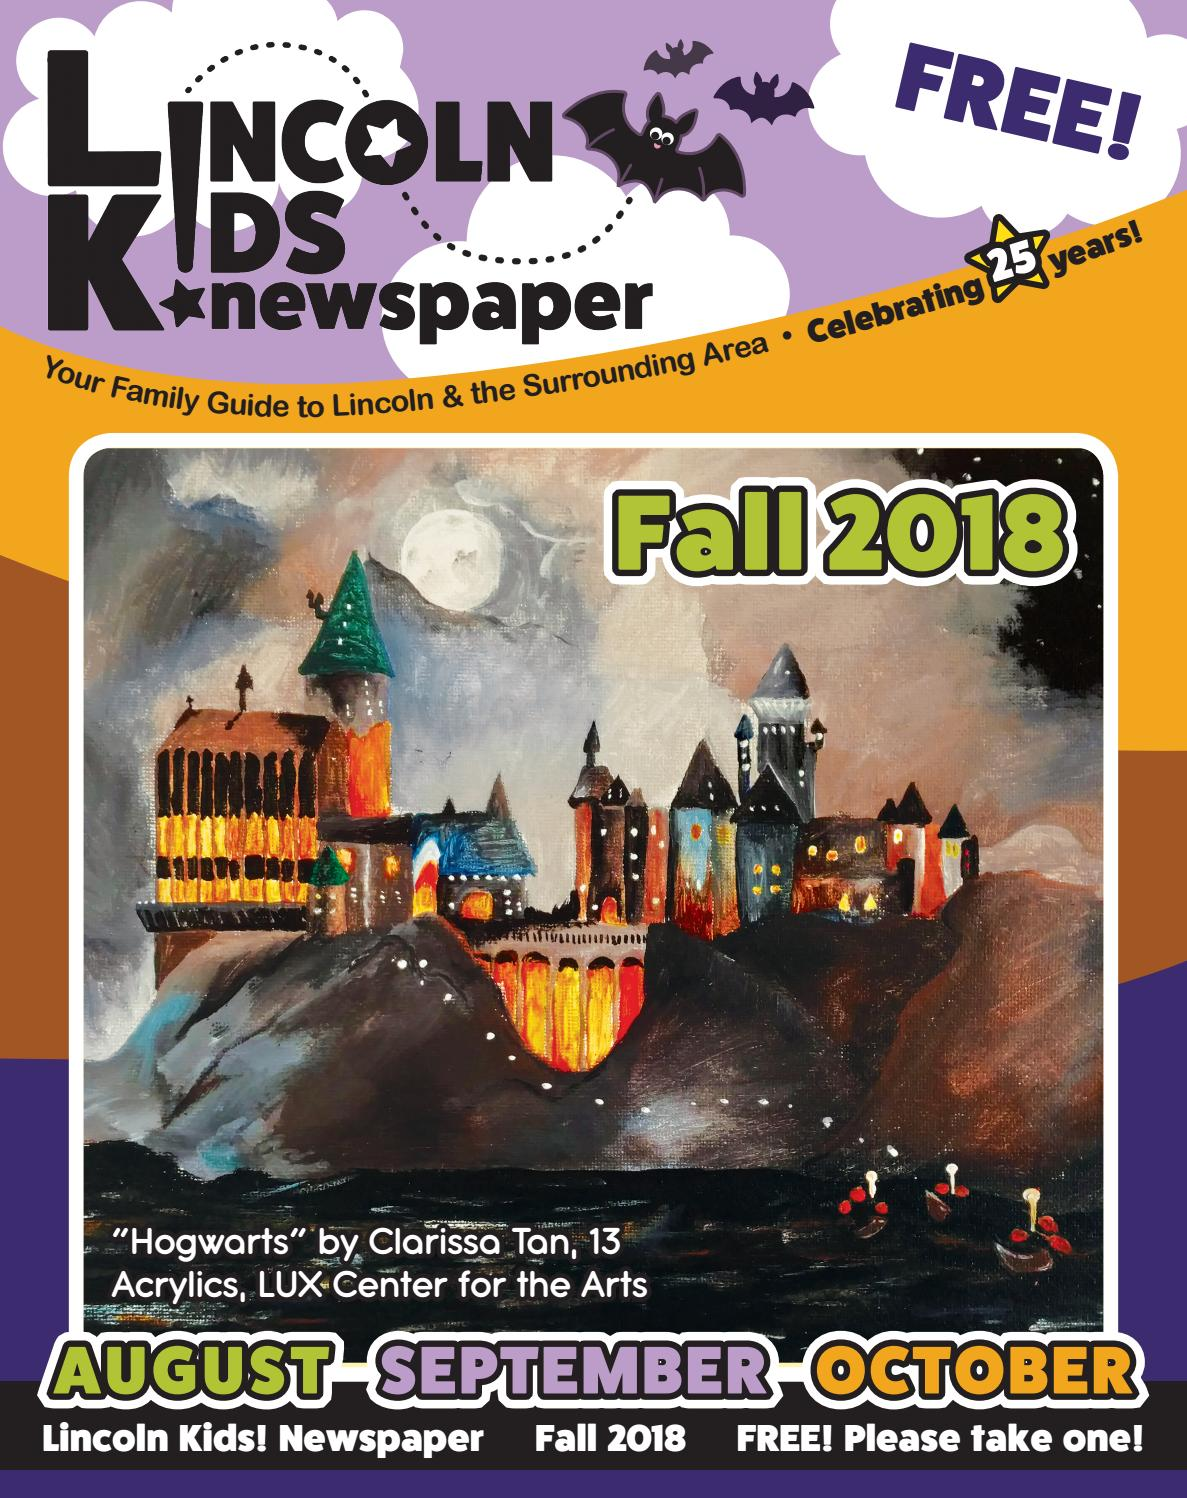 fall flower arrangements wth hay rasng kds and.htm lincoln kids  newspaper     fall 2018 by lincoln kids  issuu  lincoln kids  newspaper     fall 2018 by